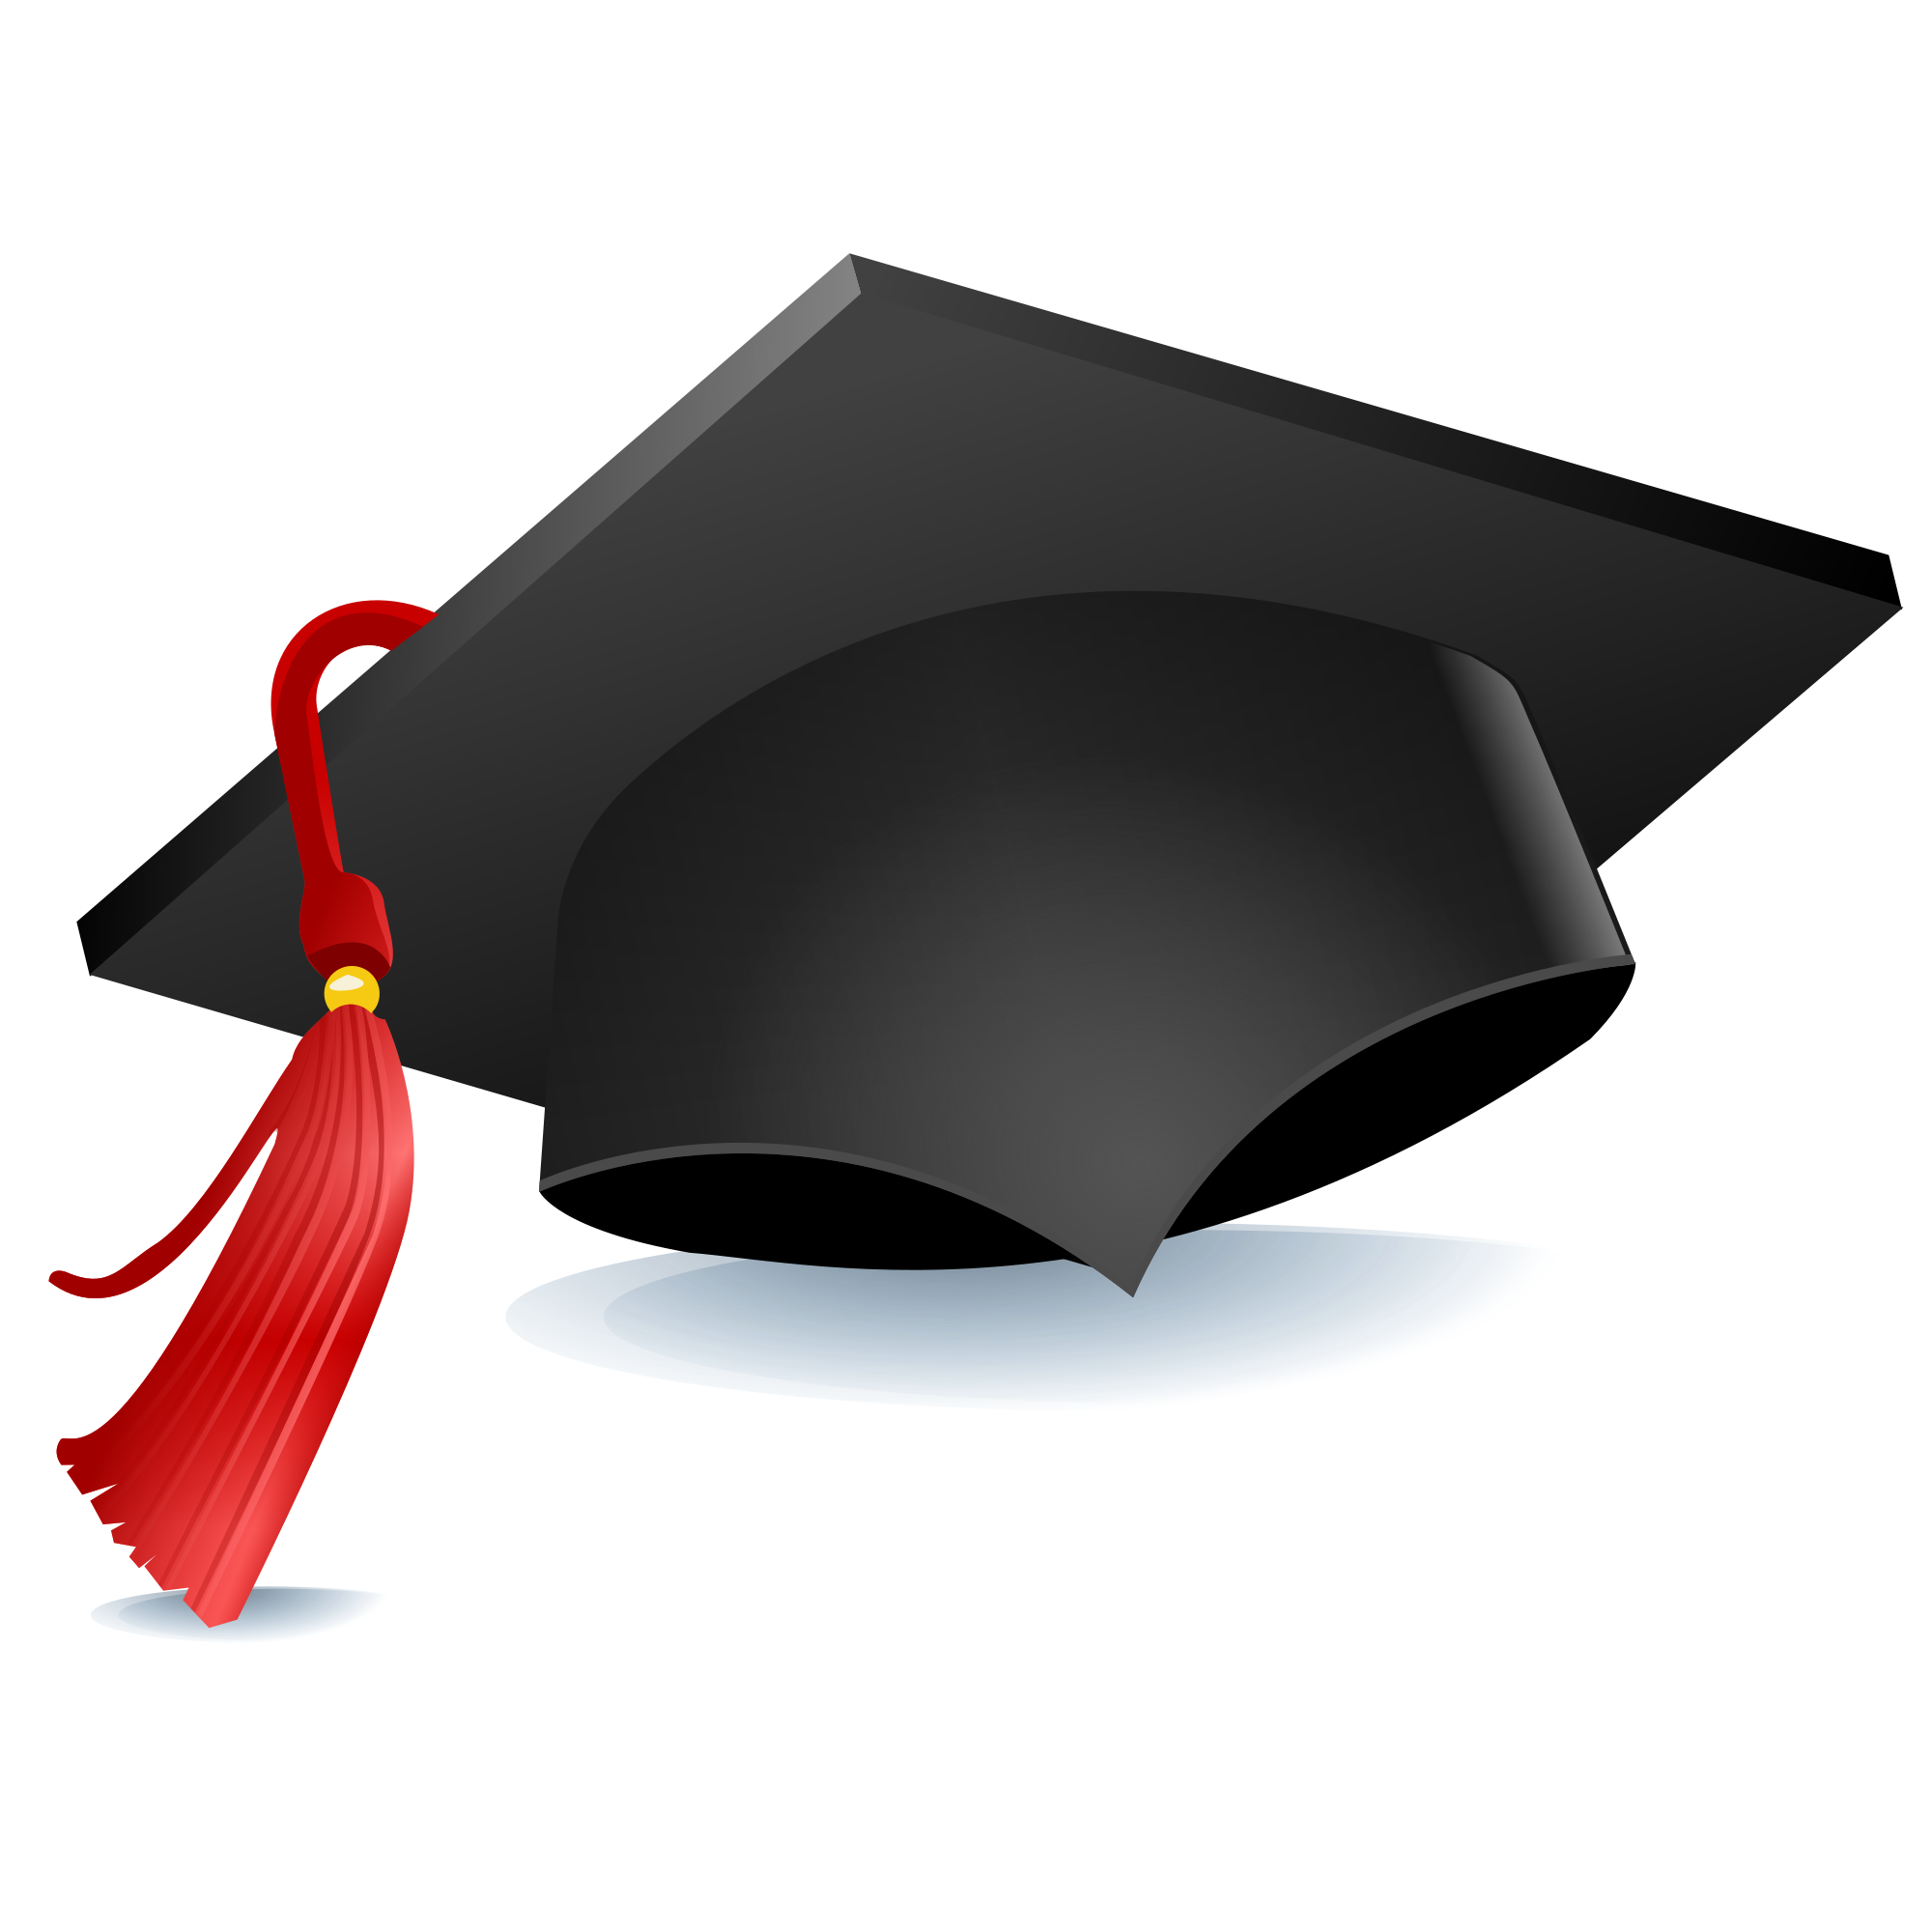 Doctoral degree png transparent. Textbook clipart graduation cap